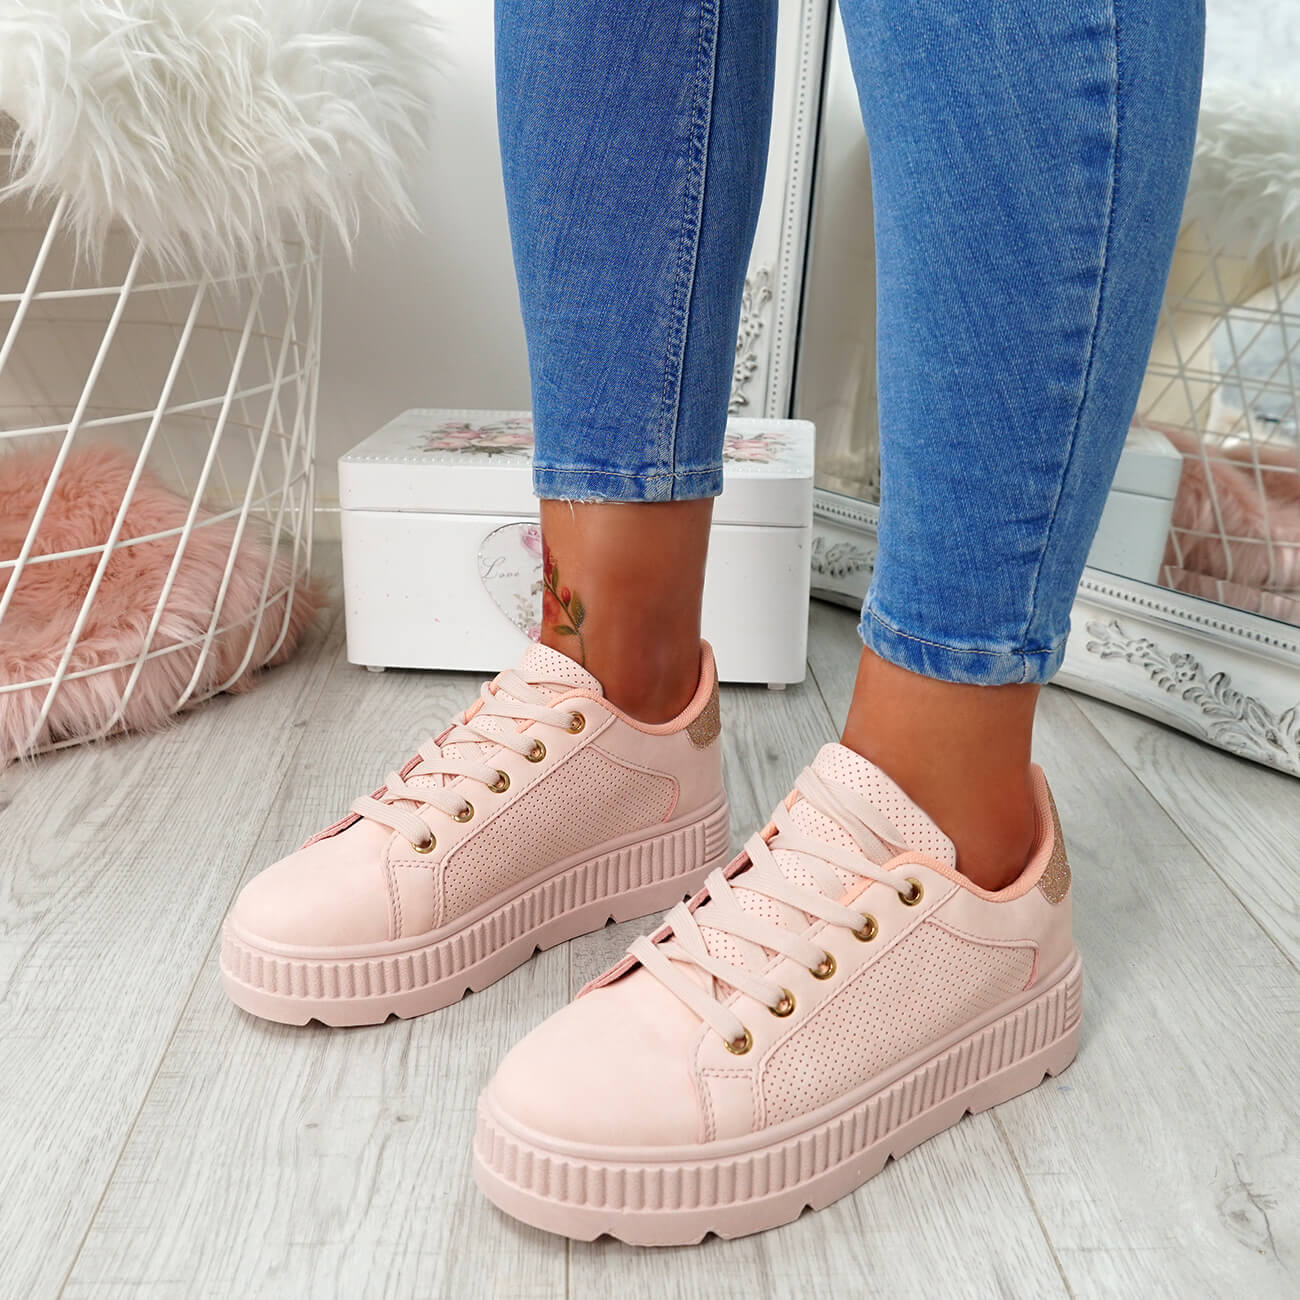 WOMENS-LADIES-PLATFORM-TRAINERS-LACE-UP-GLITTER-SNEAKERS-SHOES-SIZE-UK thumbnail 20